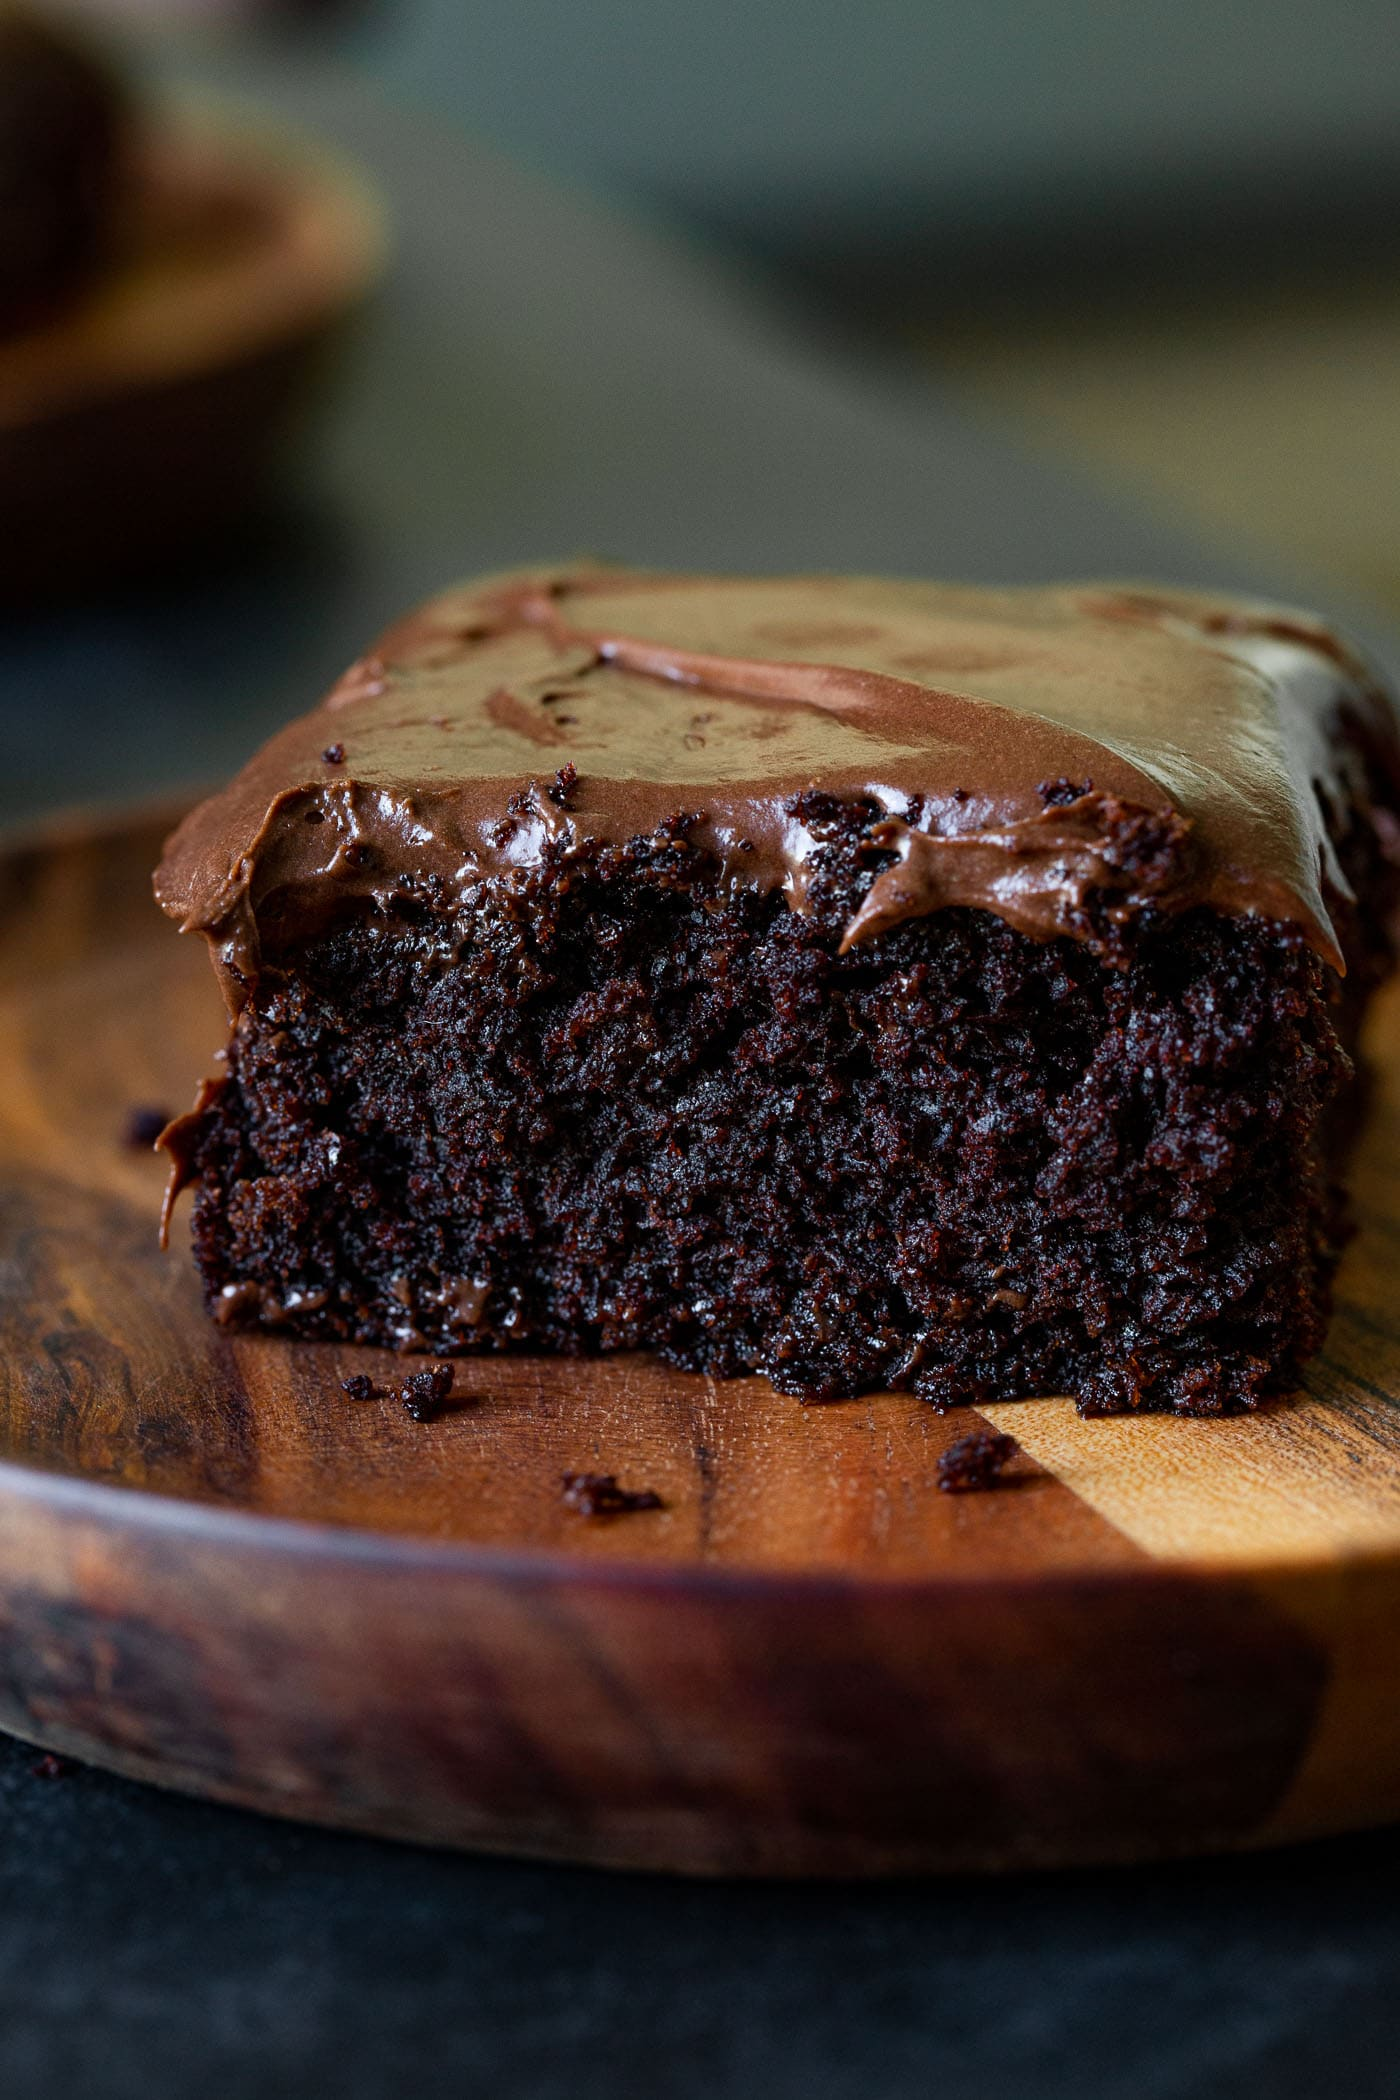 A slice of chocolate zucchini cake with creamy chocolate cream cheese frosting. The piece of cake is on a wooden dessert plate.